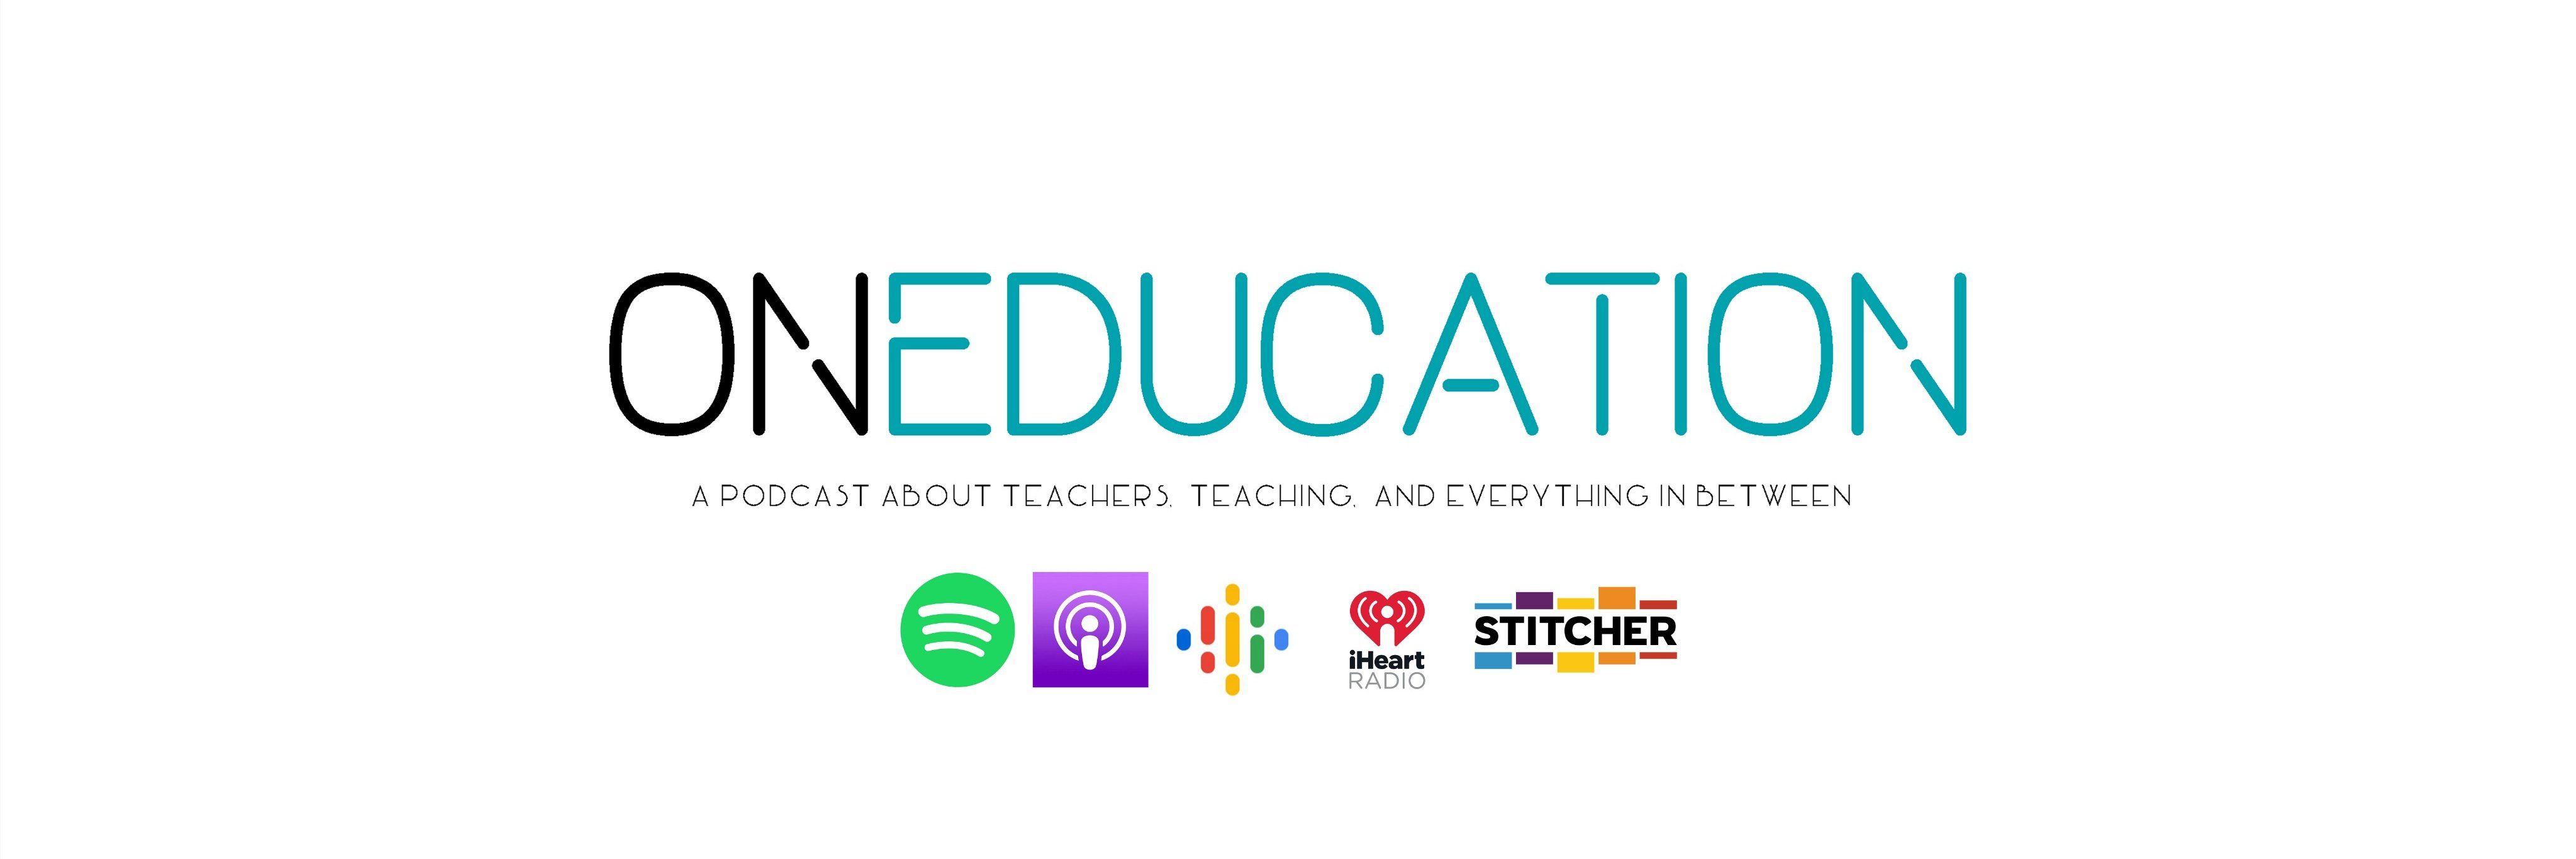 Time to do some good! @OnEducationPod is going to #clearthelists for some teachers who still need help! Follow us… https://t.co/GBgHr0tPZG